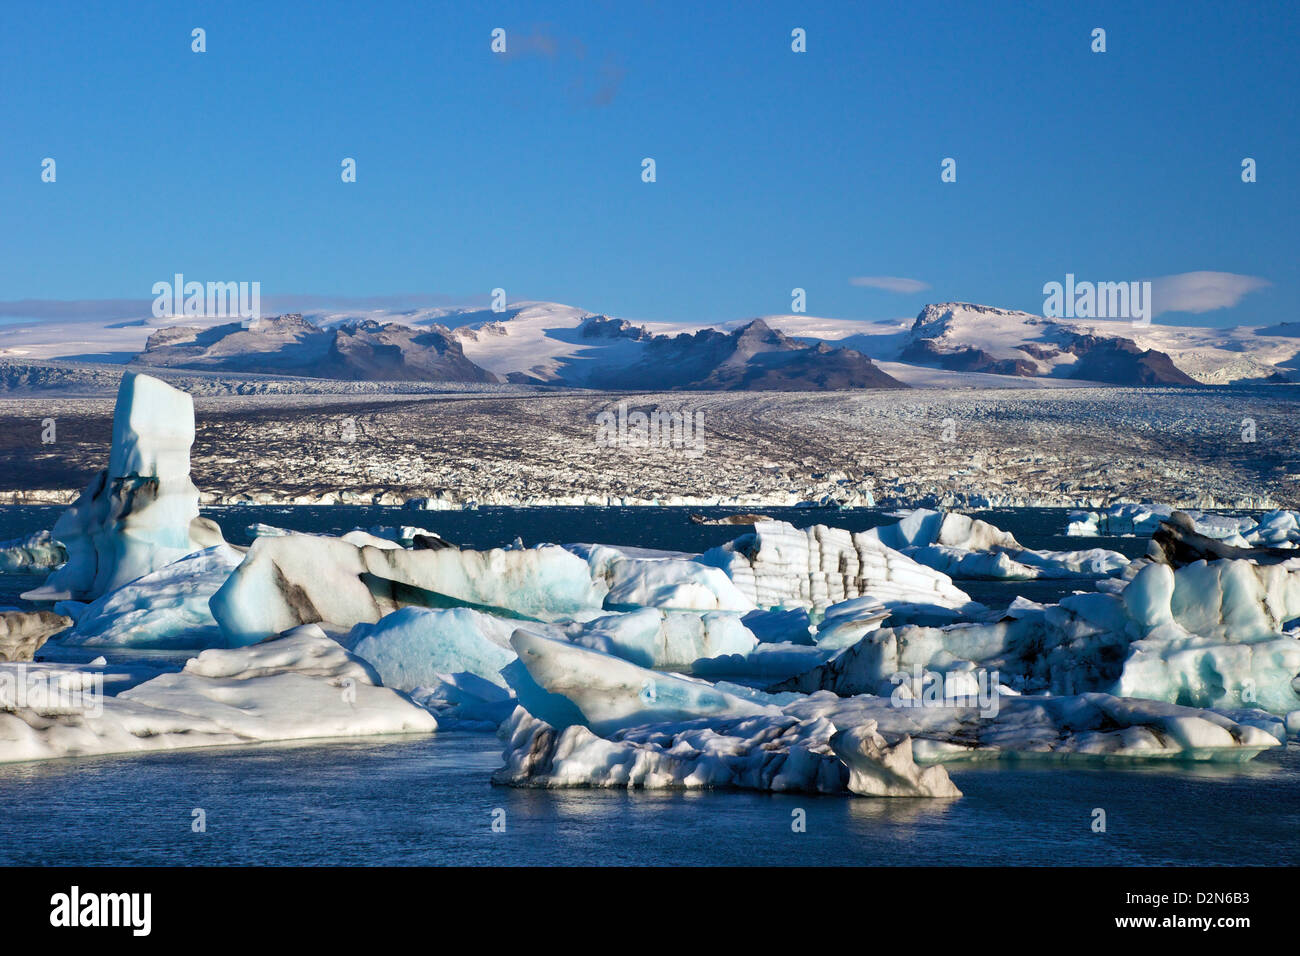 Icebergs on glacial lake at Jokulsarlon with snow on the massive icecap of Vatnajokull behind, Iceland, Polar Regions - Stock Image